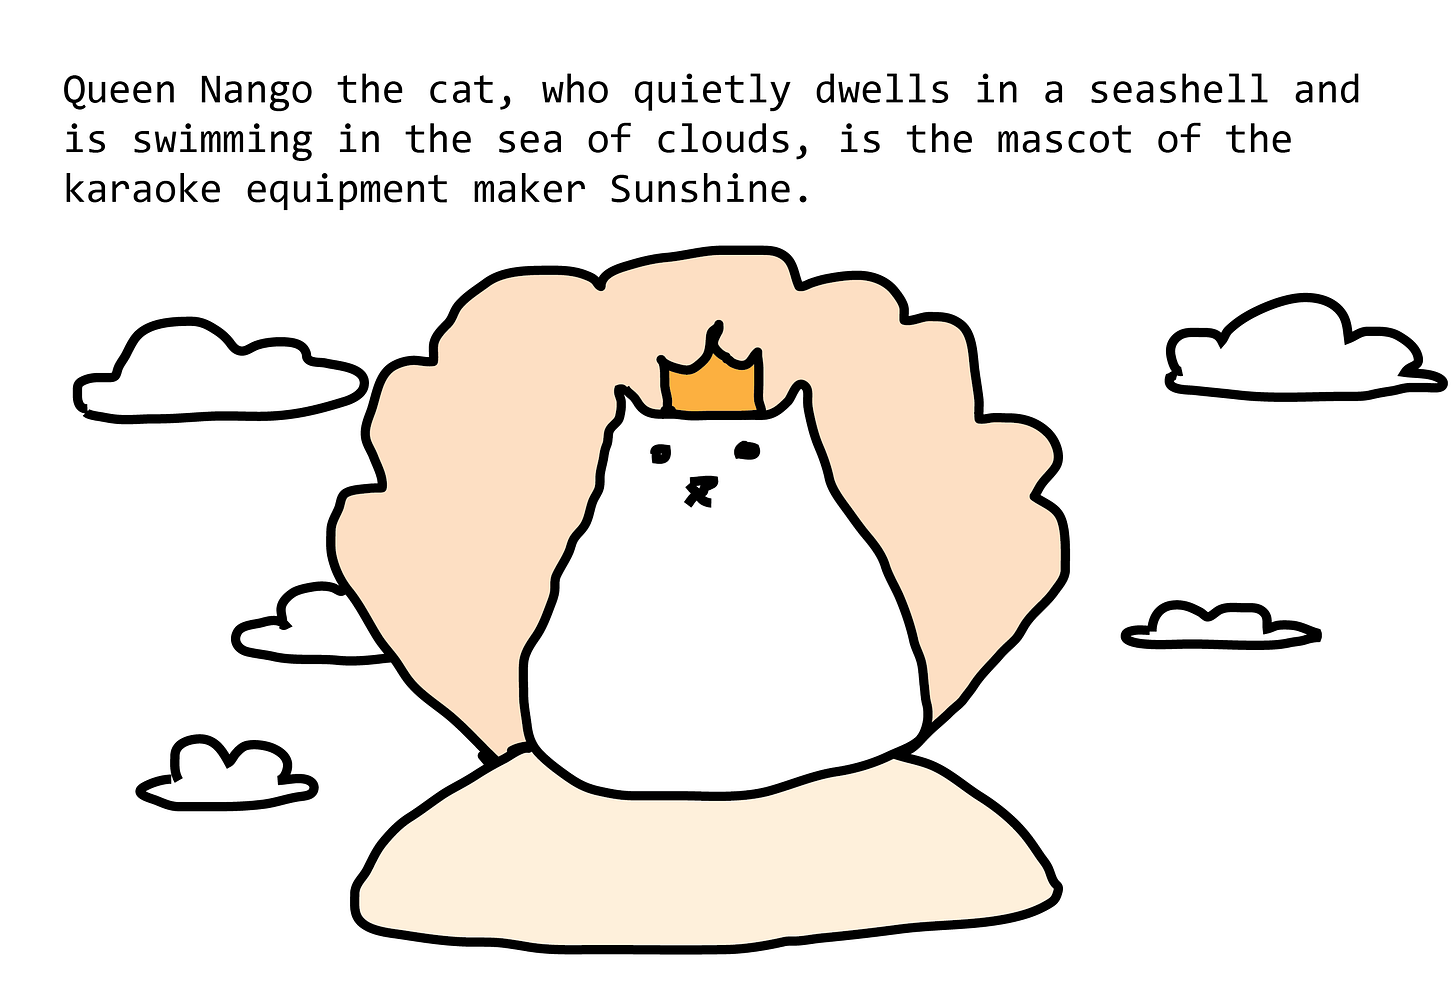 Queen Nango the cat, who quietly dwells in a seashell and is swimming in the sea of clouds, is the mascot of the karaoke equipment maker Sunshine. Cat is very round and serene, and floats in an open scallop shell among clouds.